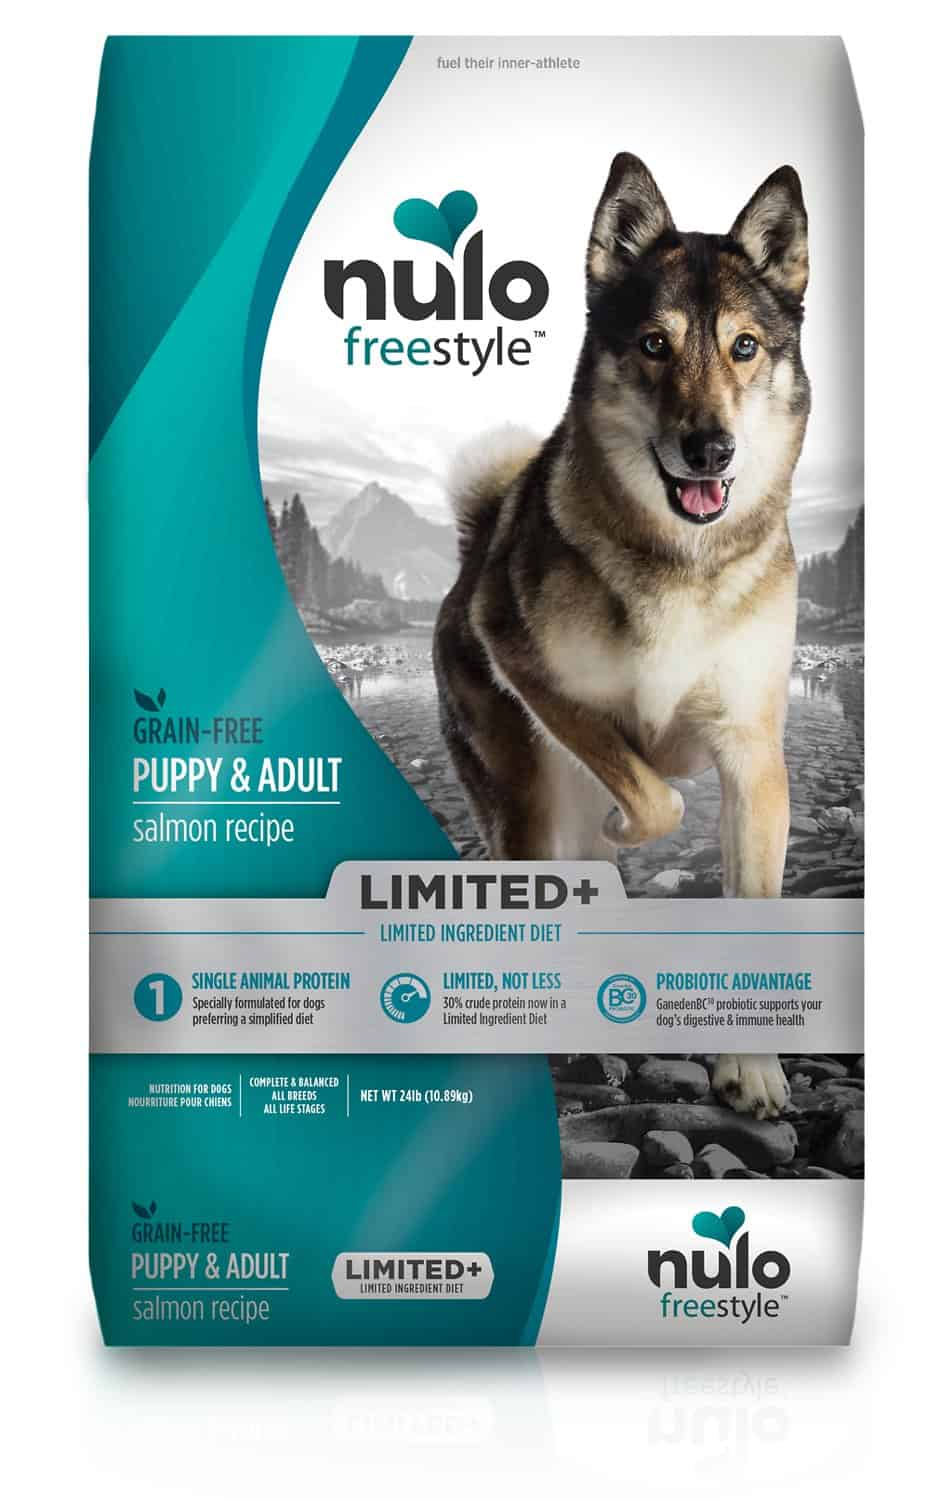 Nulo Freestyle Limited+ Puppy Grain-Free